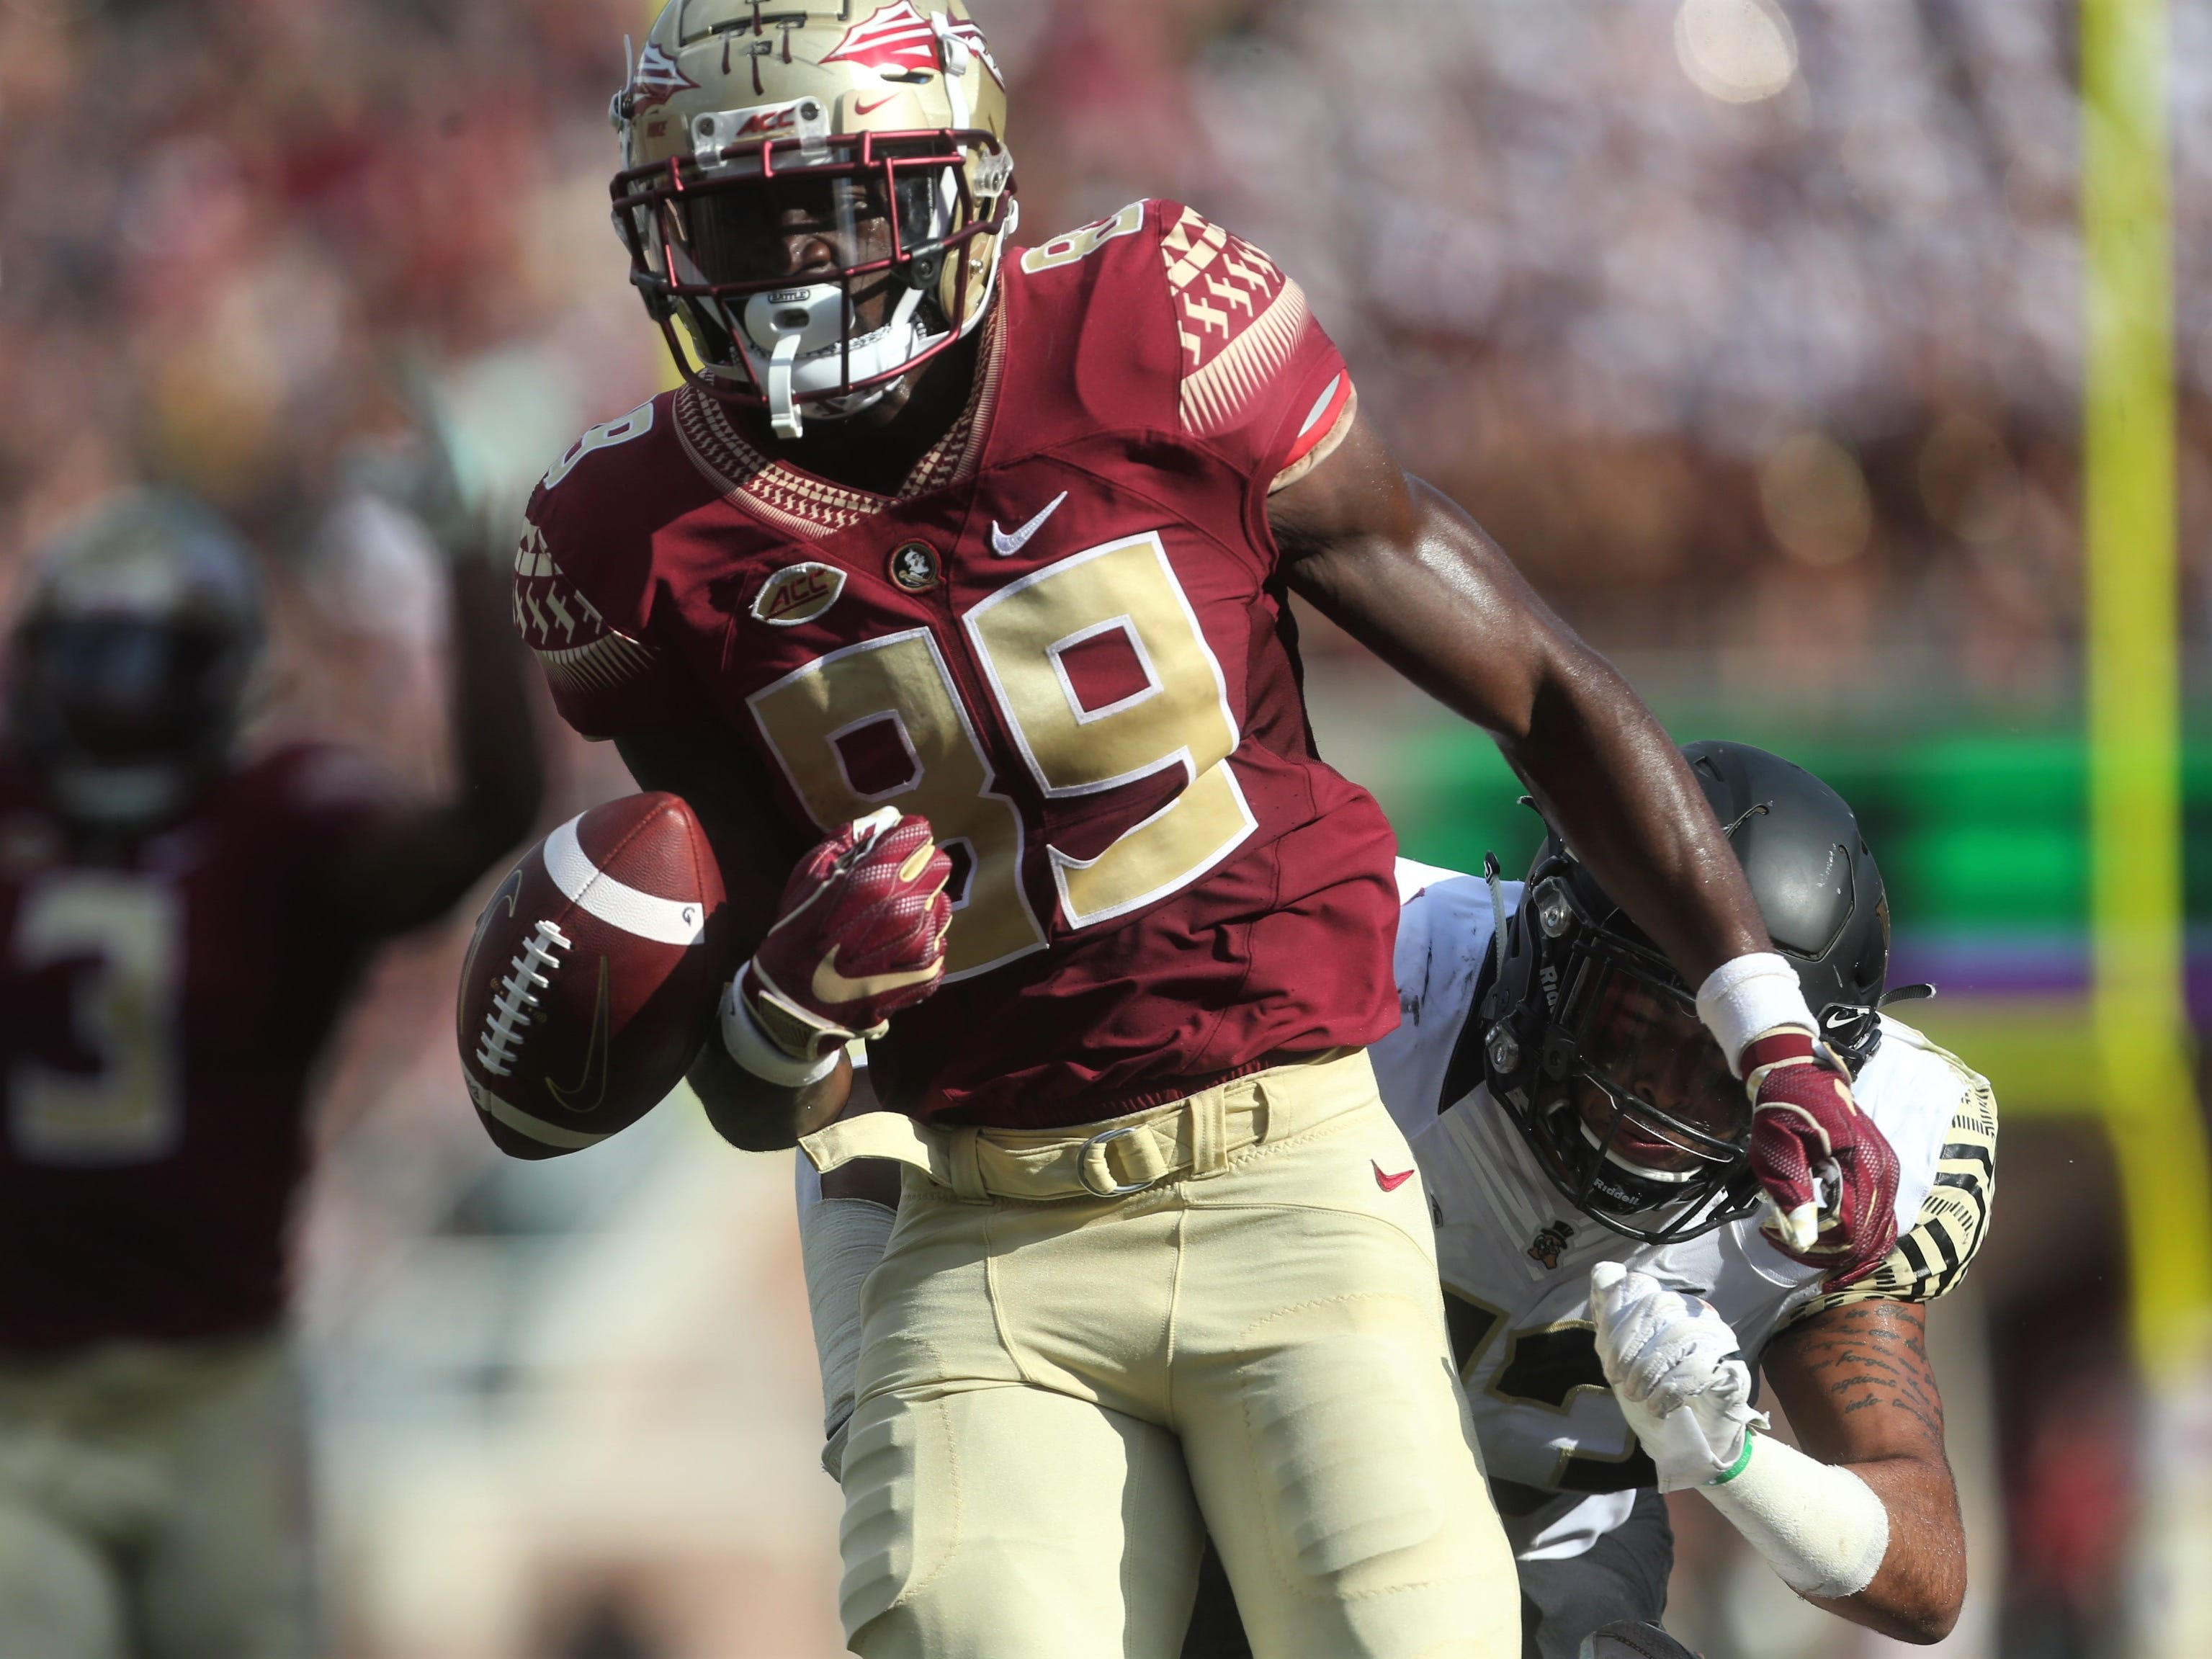 Florida State receiver Keith Gavin races to outrun Wake Forest linebacker Justin Strnad towards the goal line after a catch and run against Wake Forest, but Strnad caused a fumble with a punch during a game at Doak Campbell Stadium on Saturday, Oct. 20, 2018.